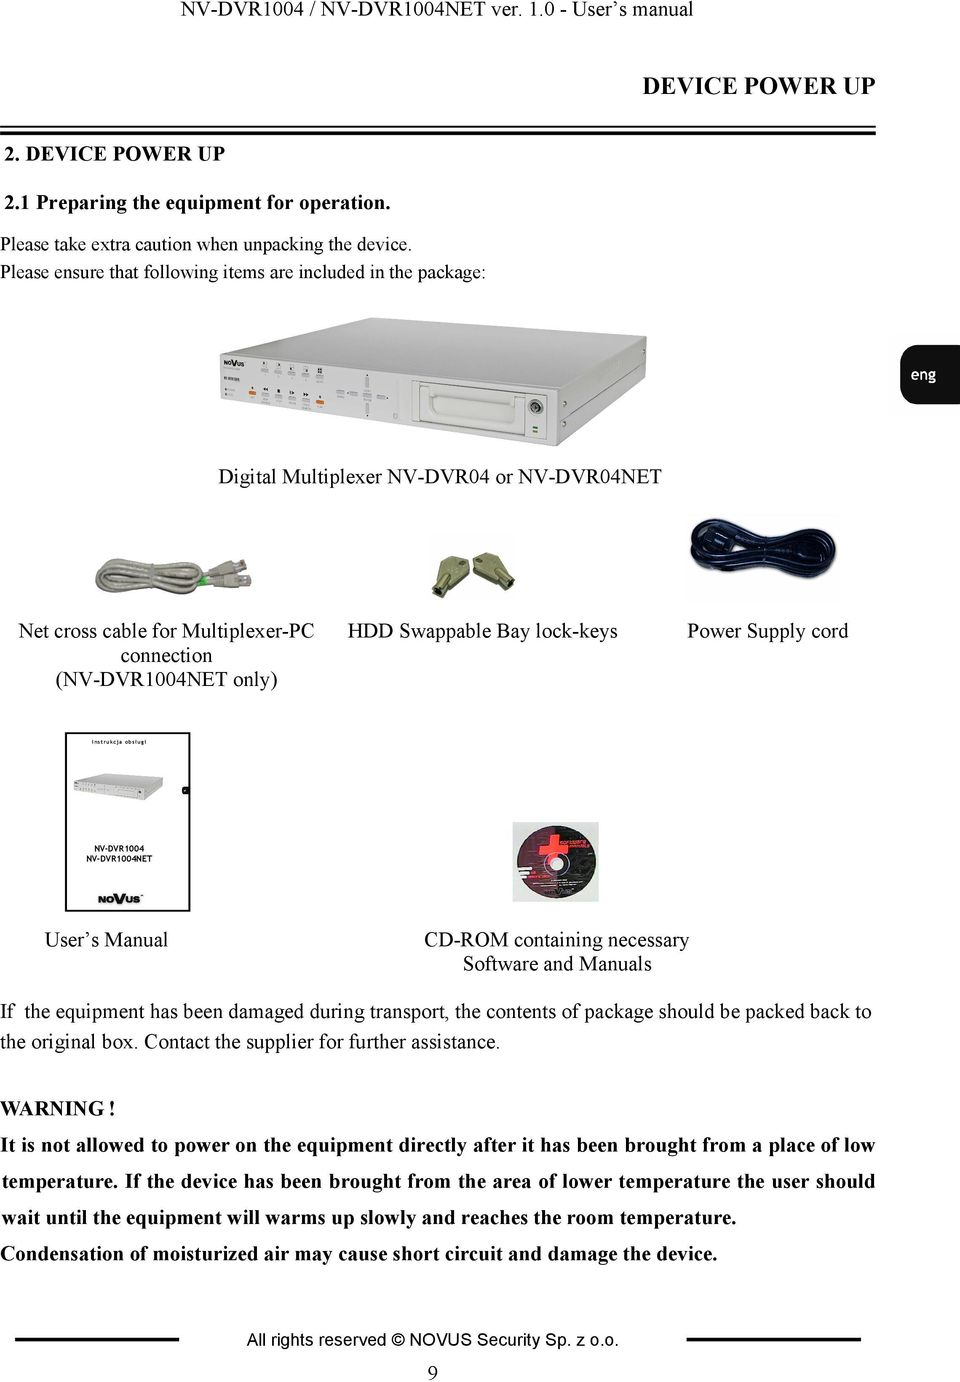 lock-keys Power Supply cord inst rukcja obsługi NV-DVR1004 NV-DVR1004NET User s Manual CD-ROM containing necessary Software and Manuals If the equipment has been damaged during transport, the